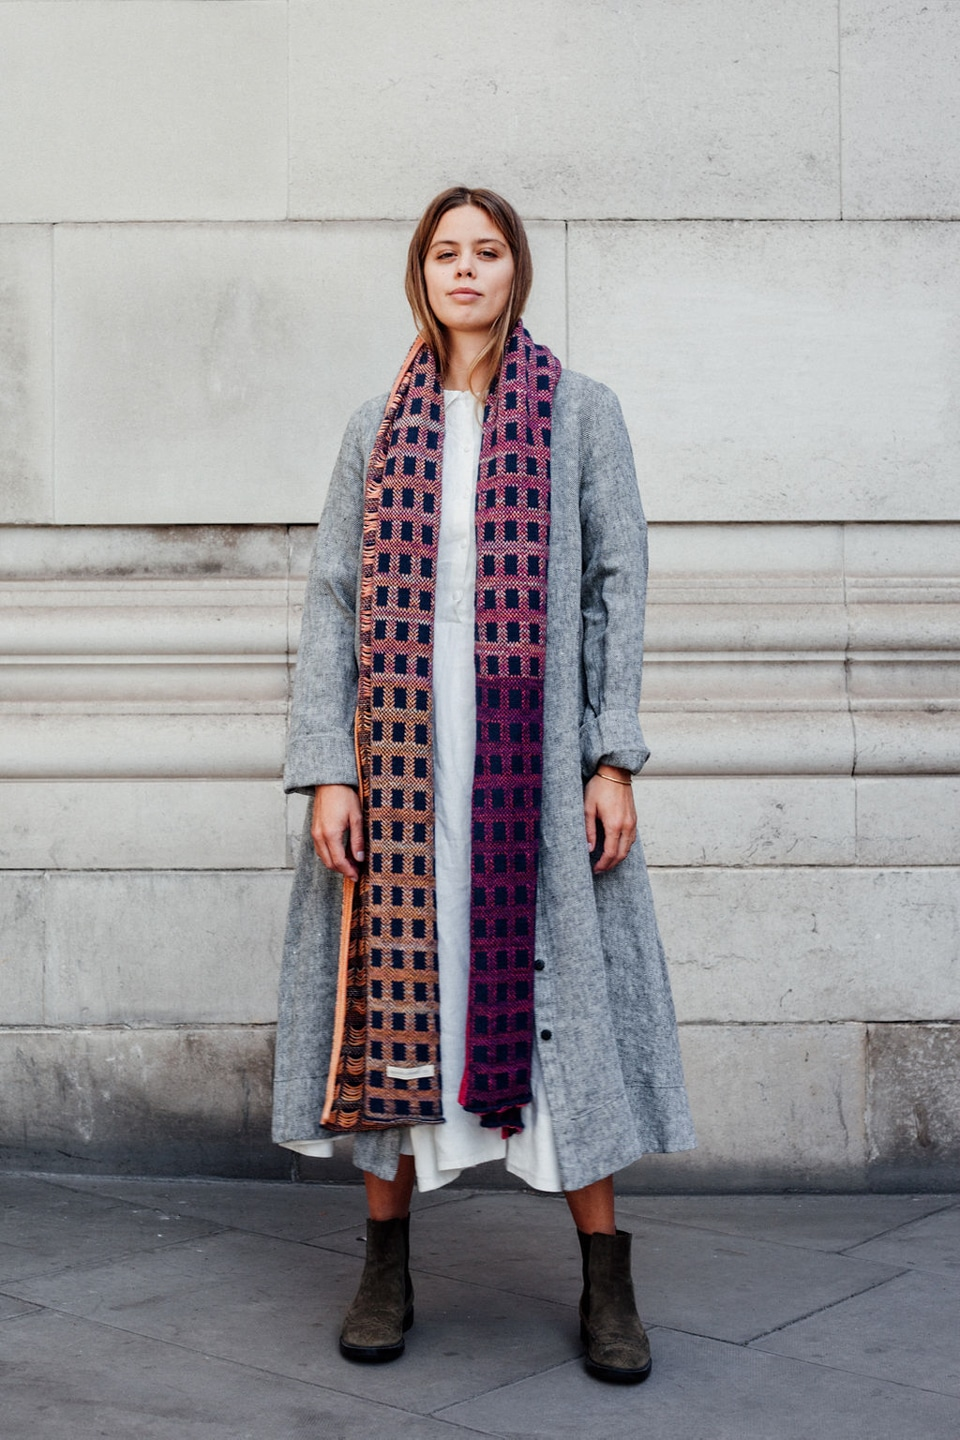 Jil wears white dress with grey jacket and long knitted scarf